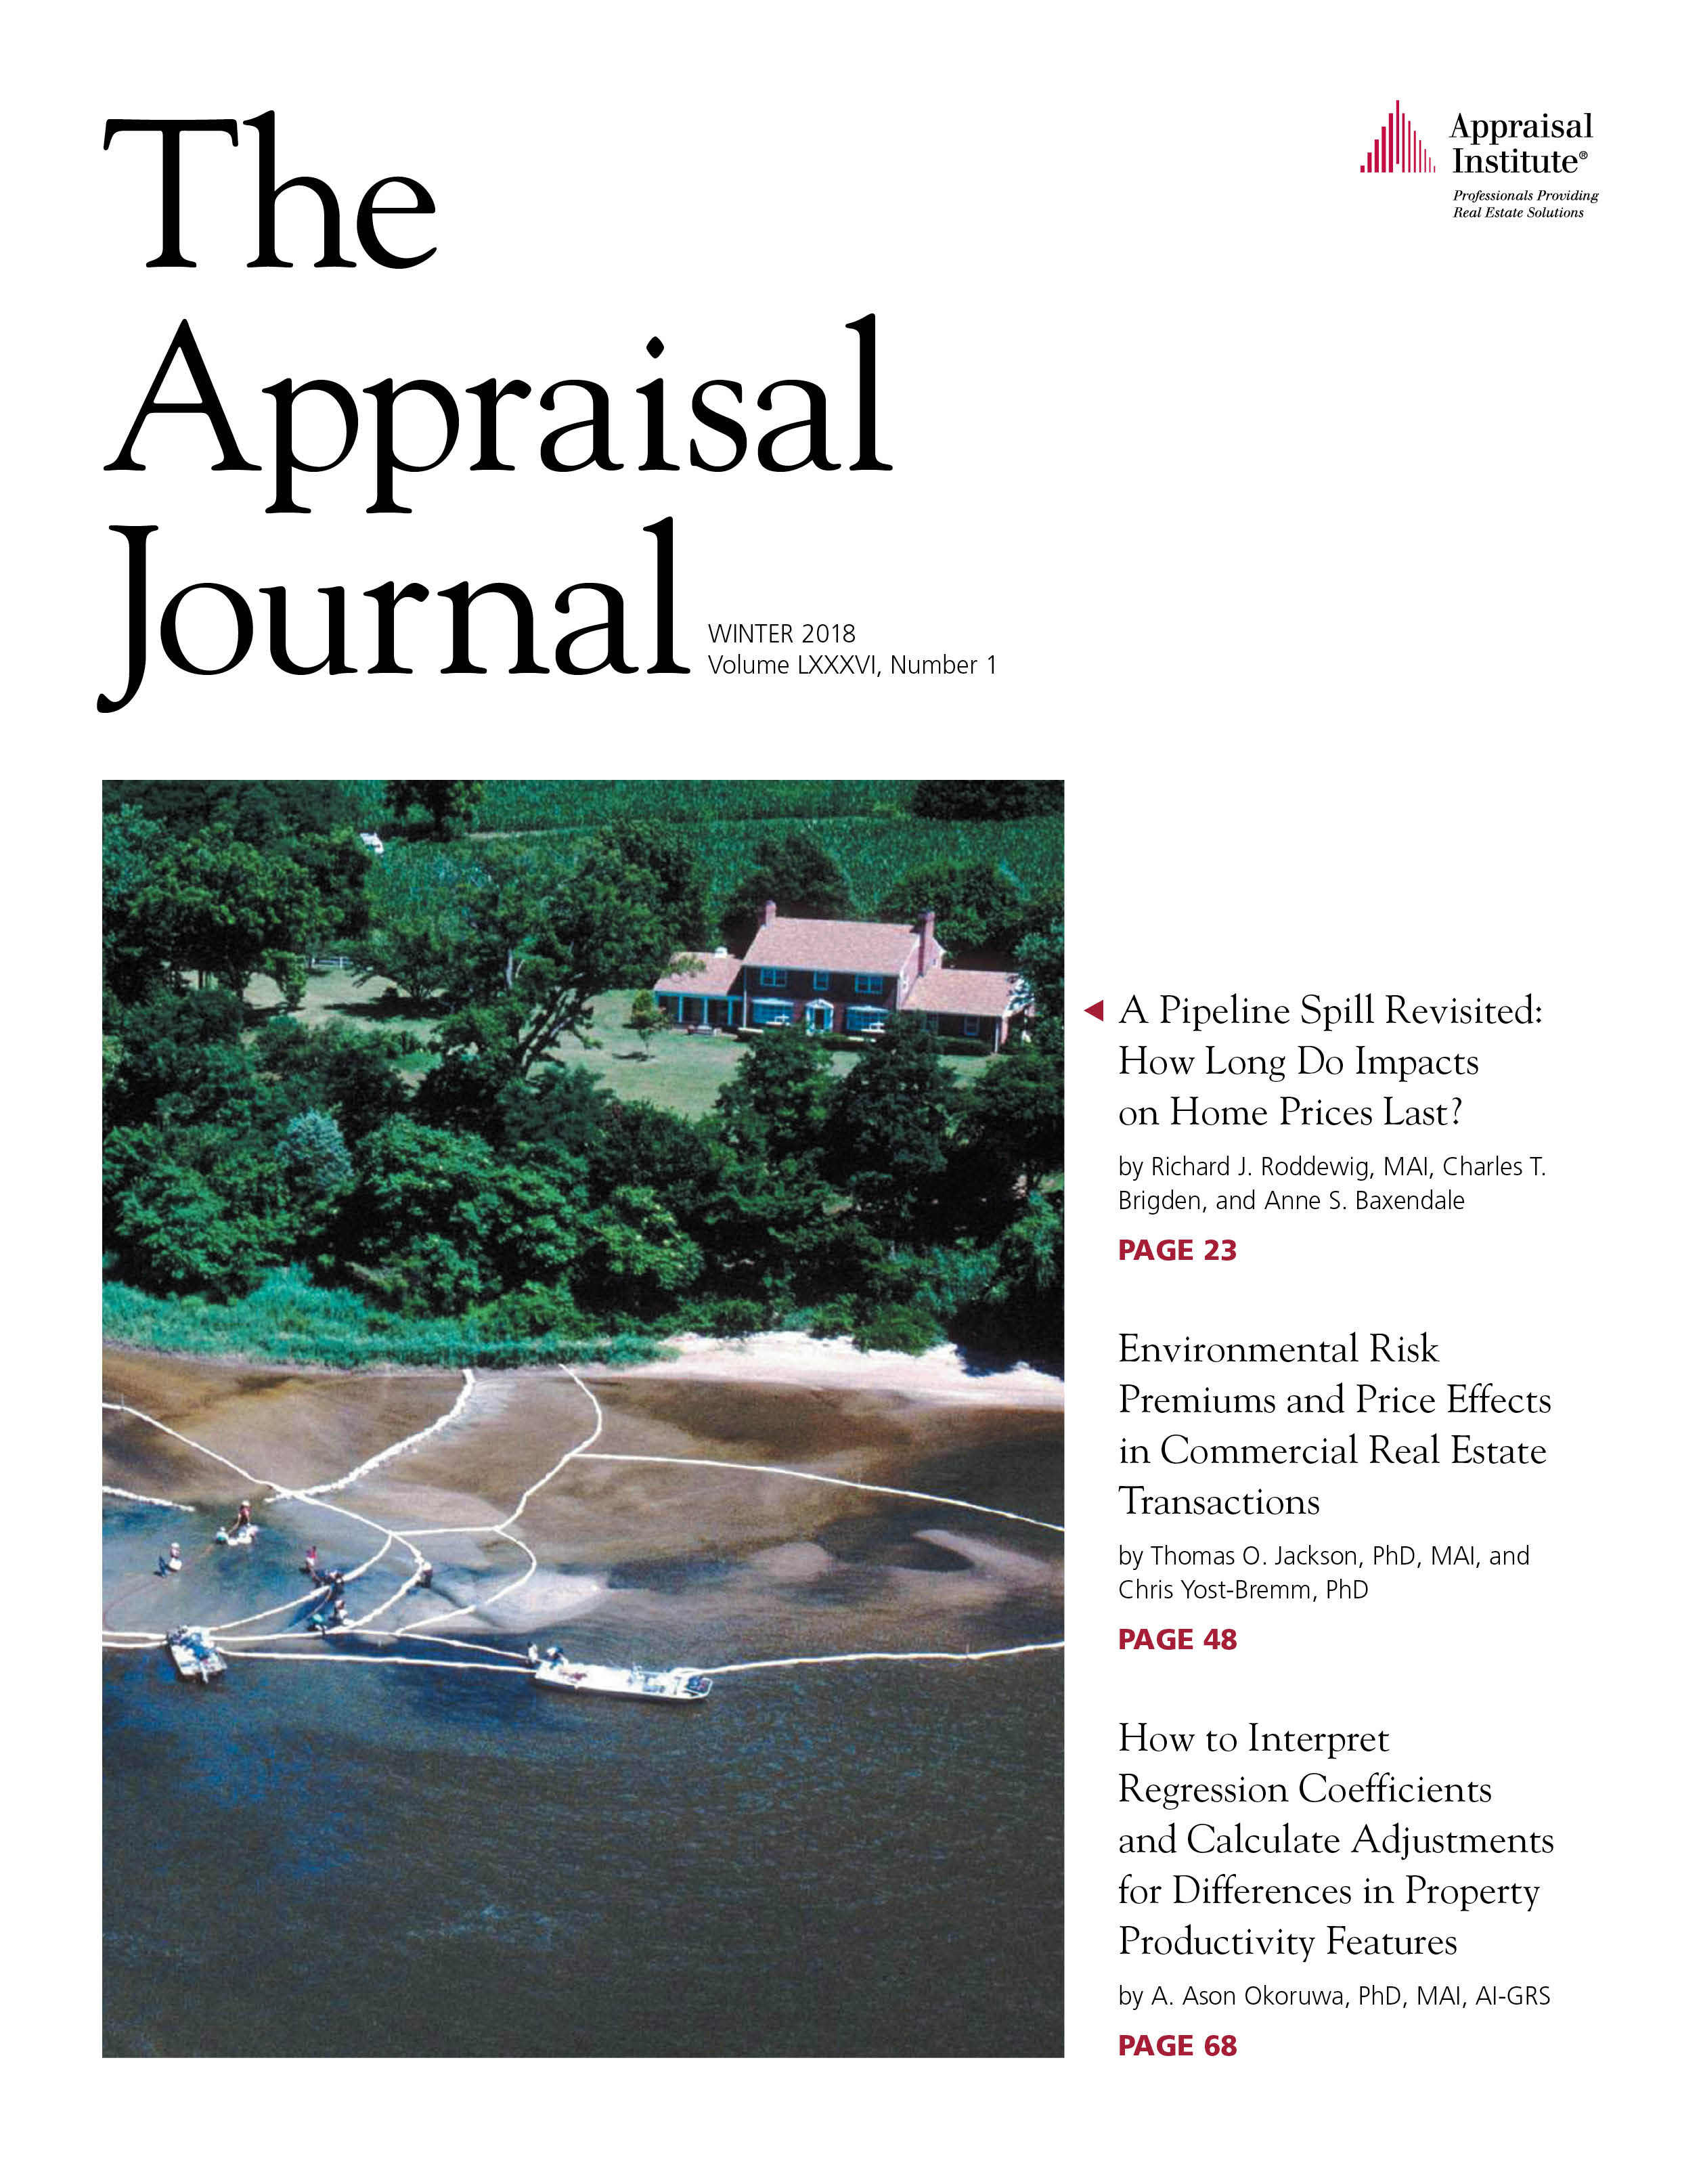 The Appraisal Journal Cover